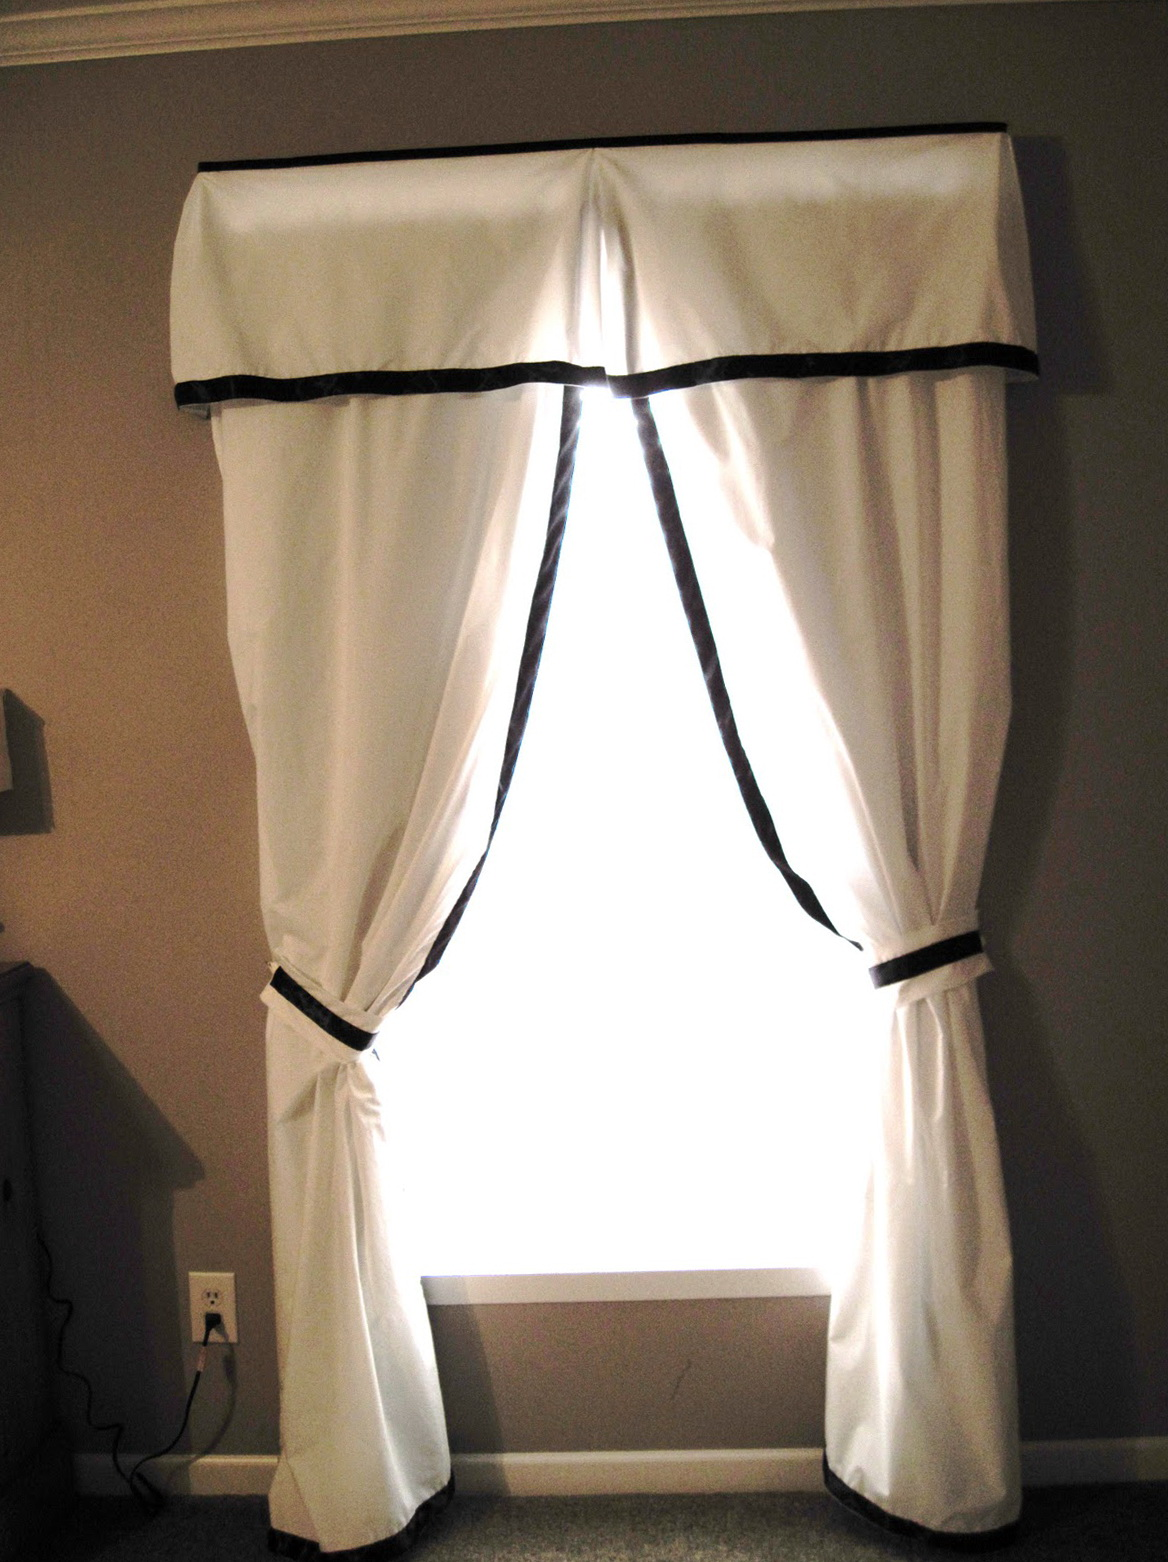 Bedroom curtain ideas small windows home design ideas Bedroom curtain ideas small windows